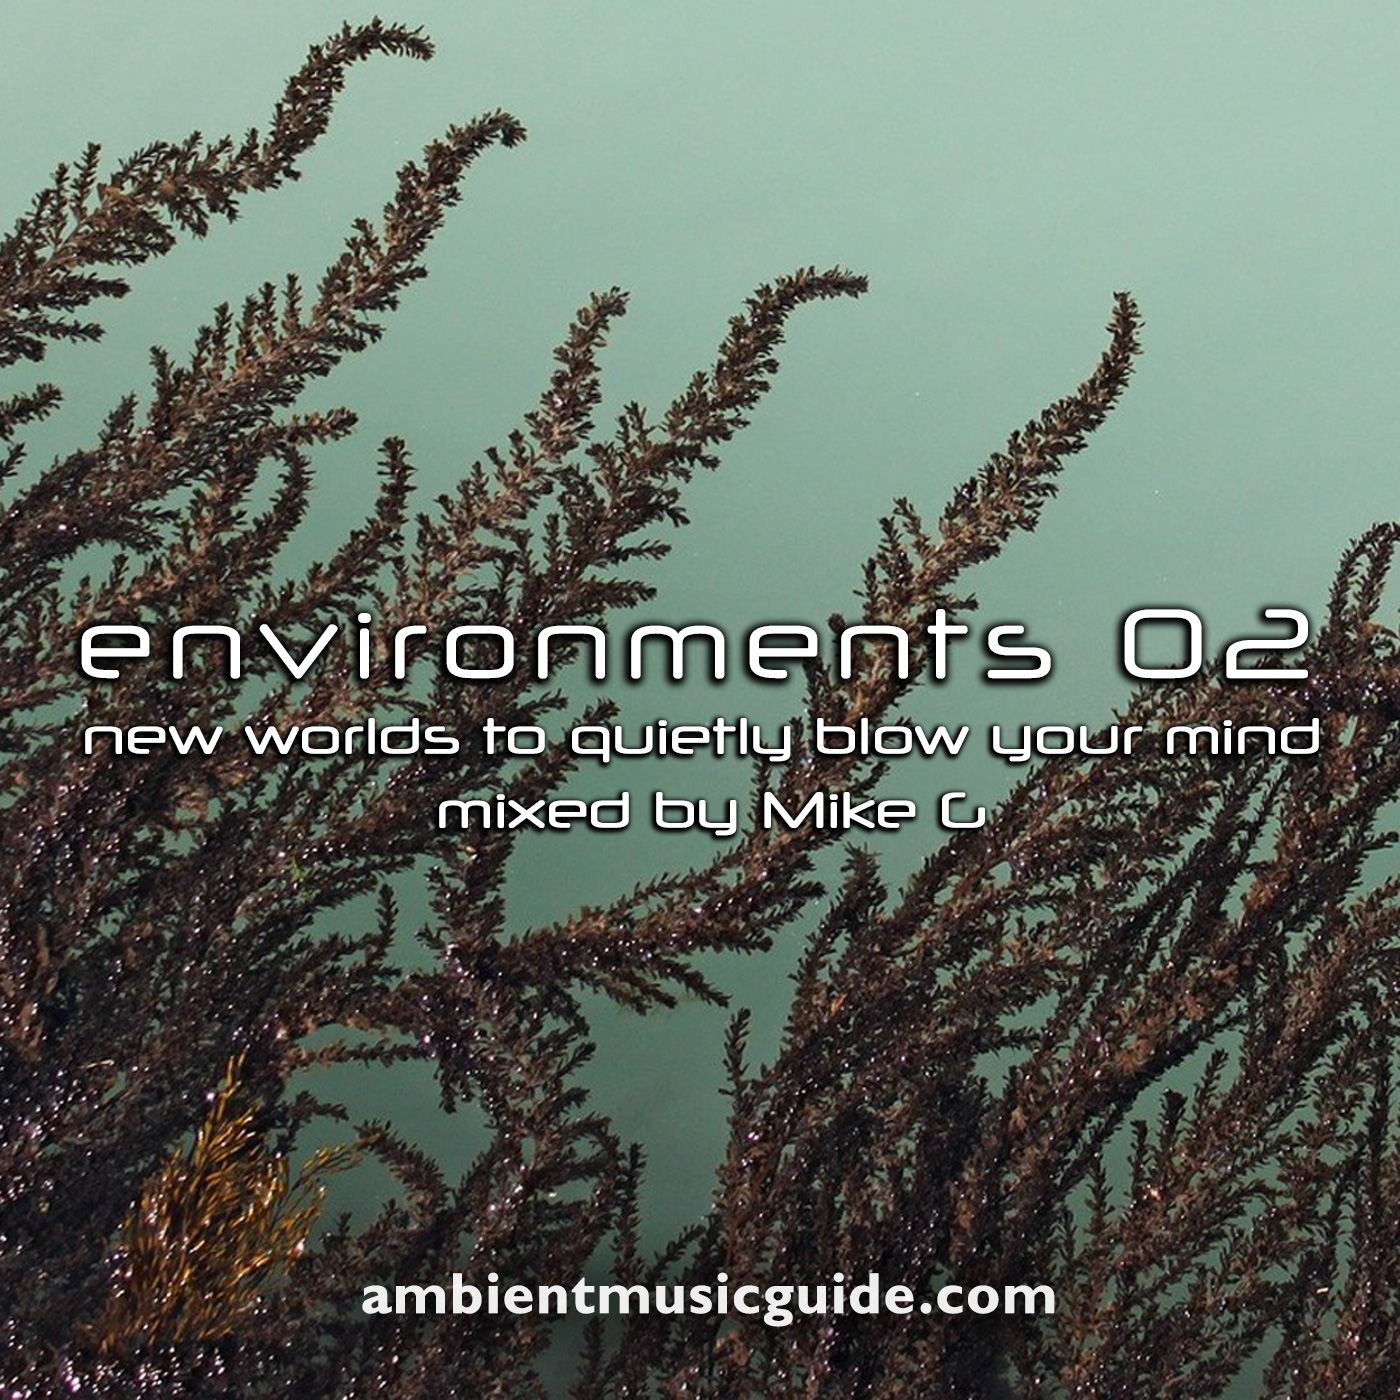 Environments 02 - new worlds to quietly blow your mind mixed by Mike G